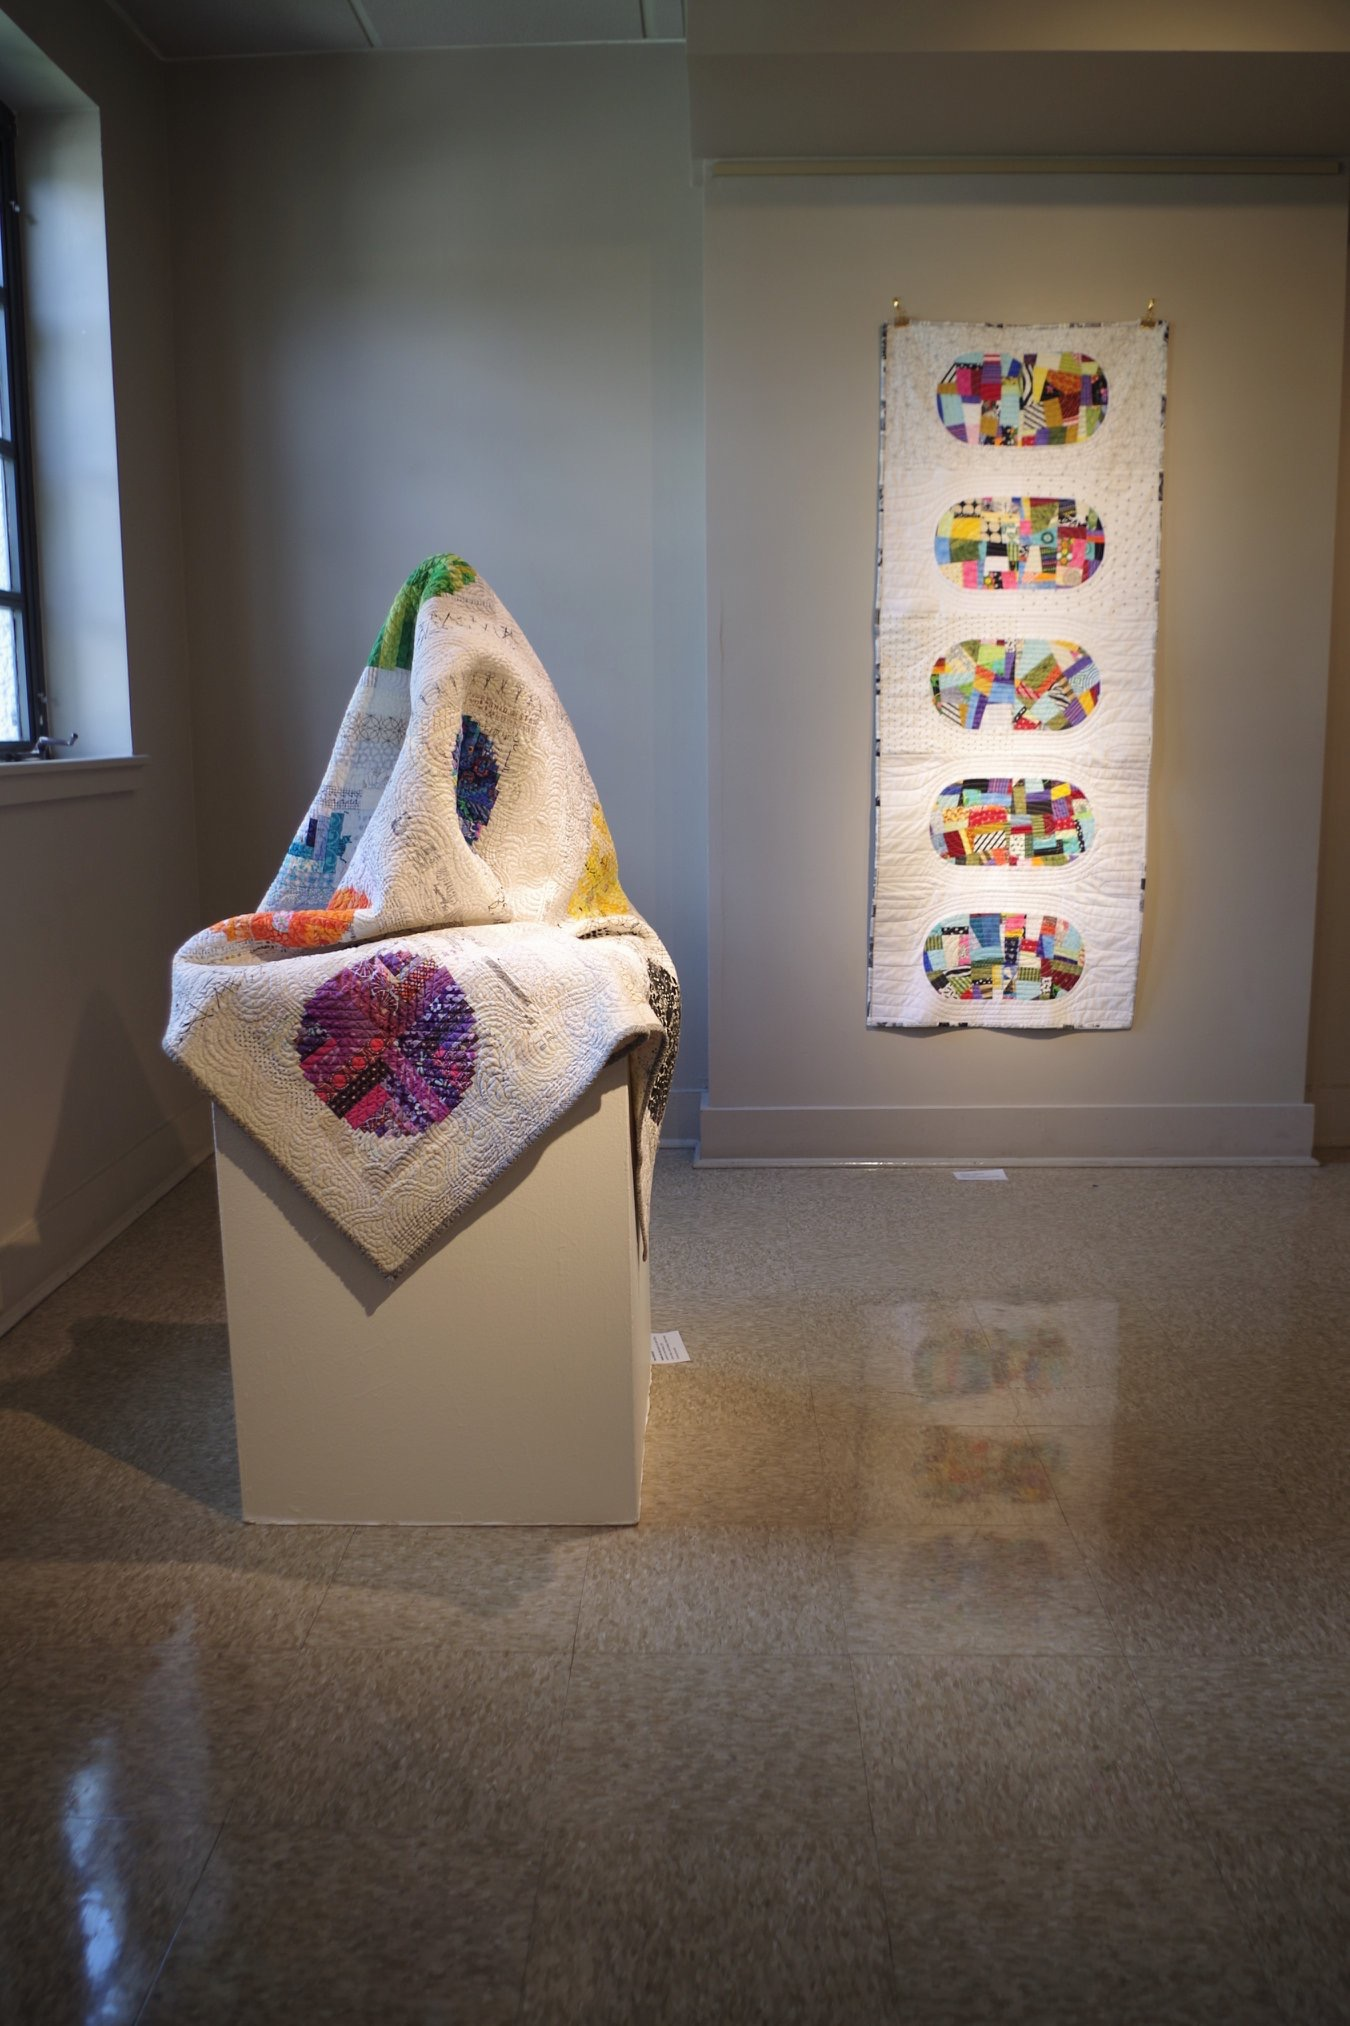 My quilt  being displayed as sculpture with  Sharleen 's beautiful quilt hanging on the wall.